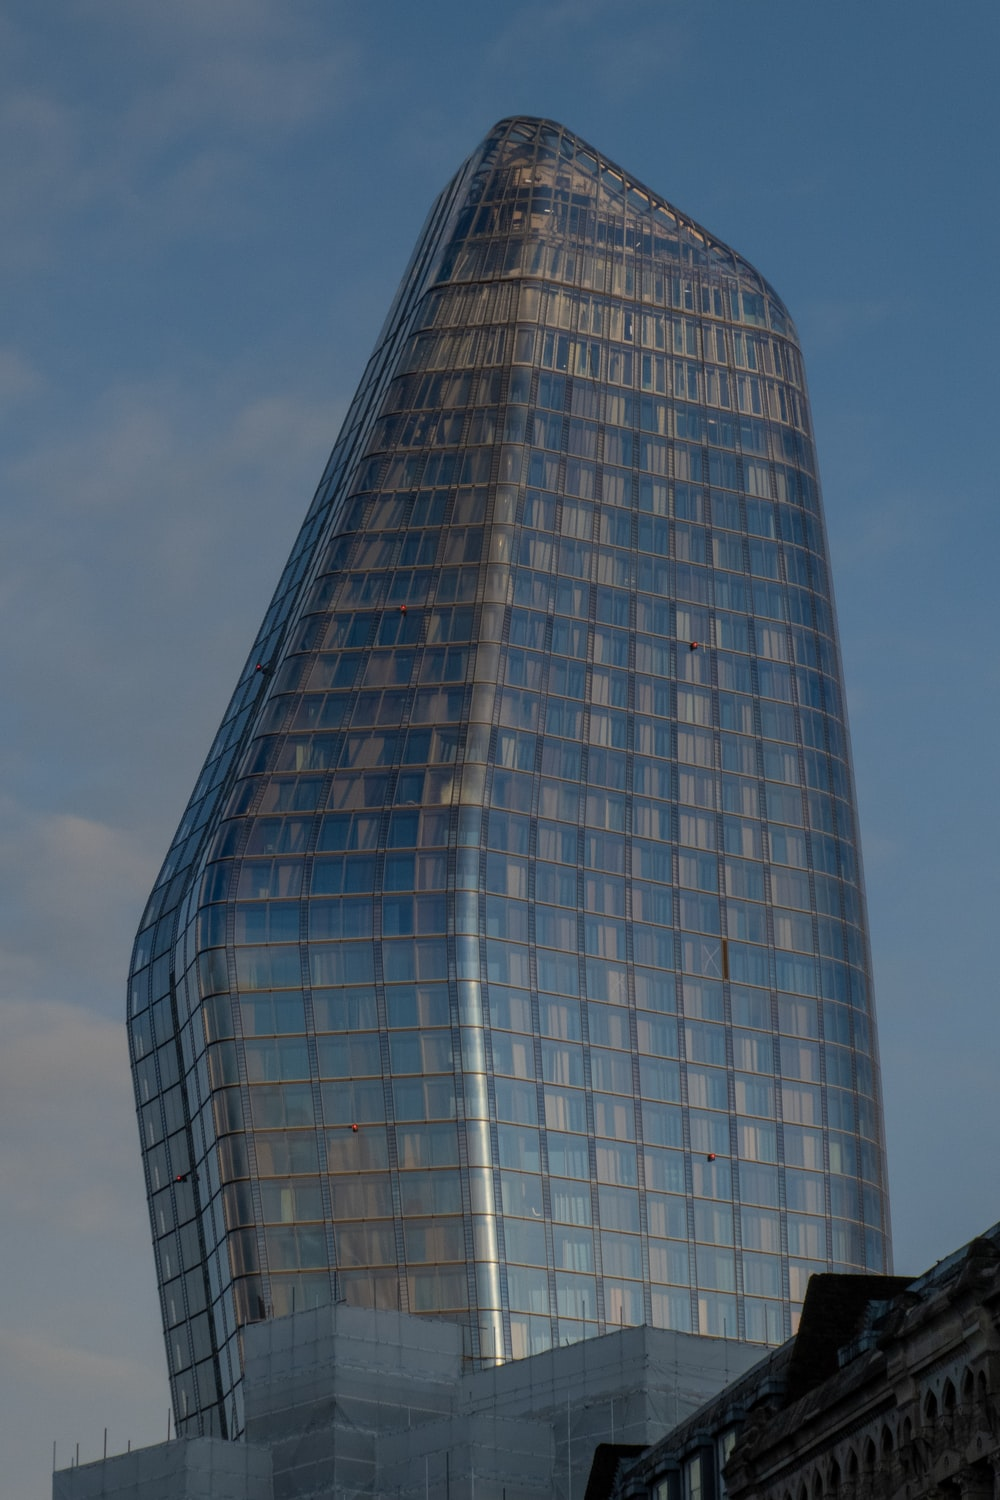 curtain wall building during daytime